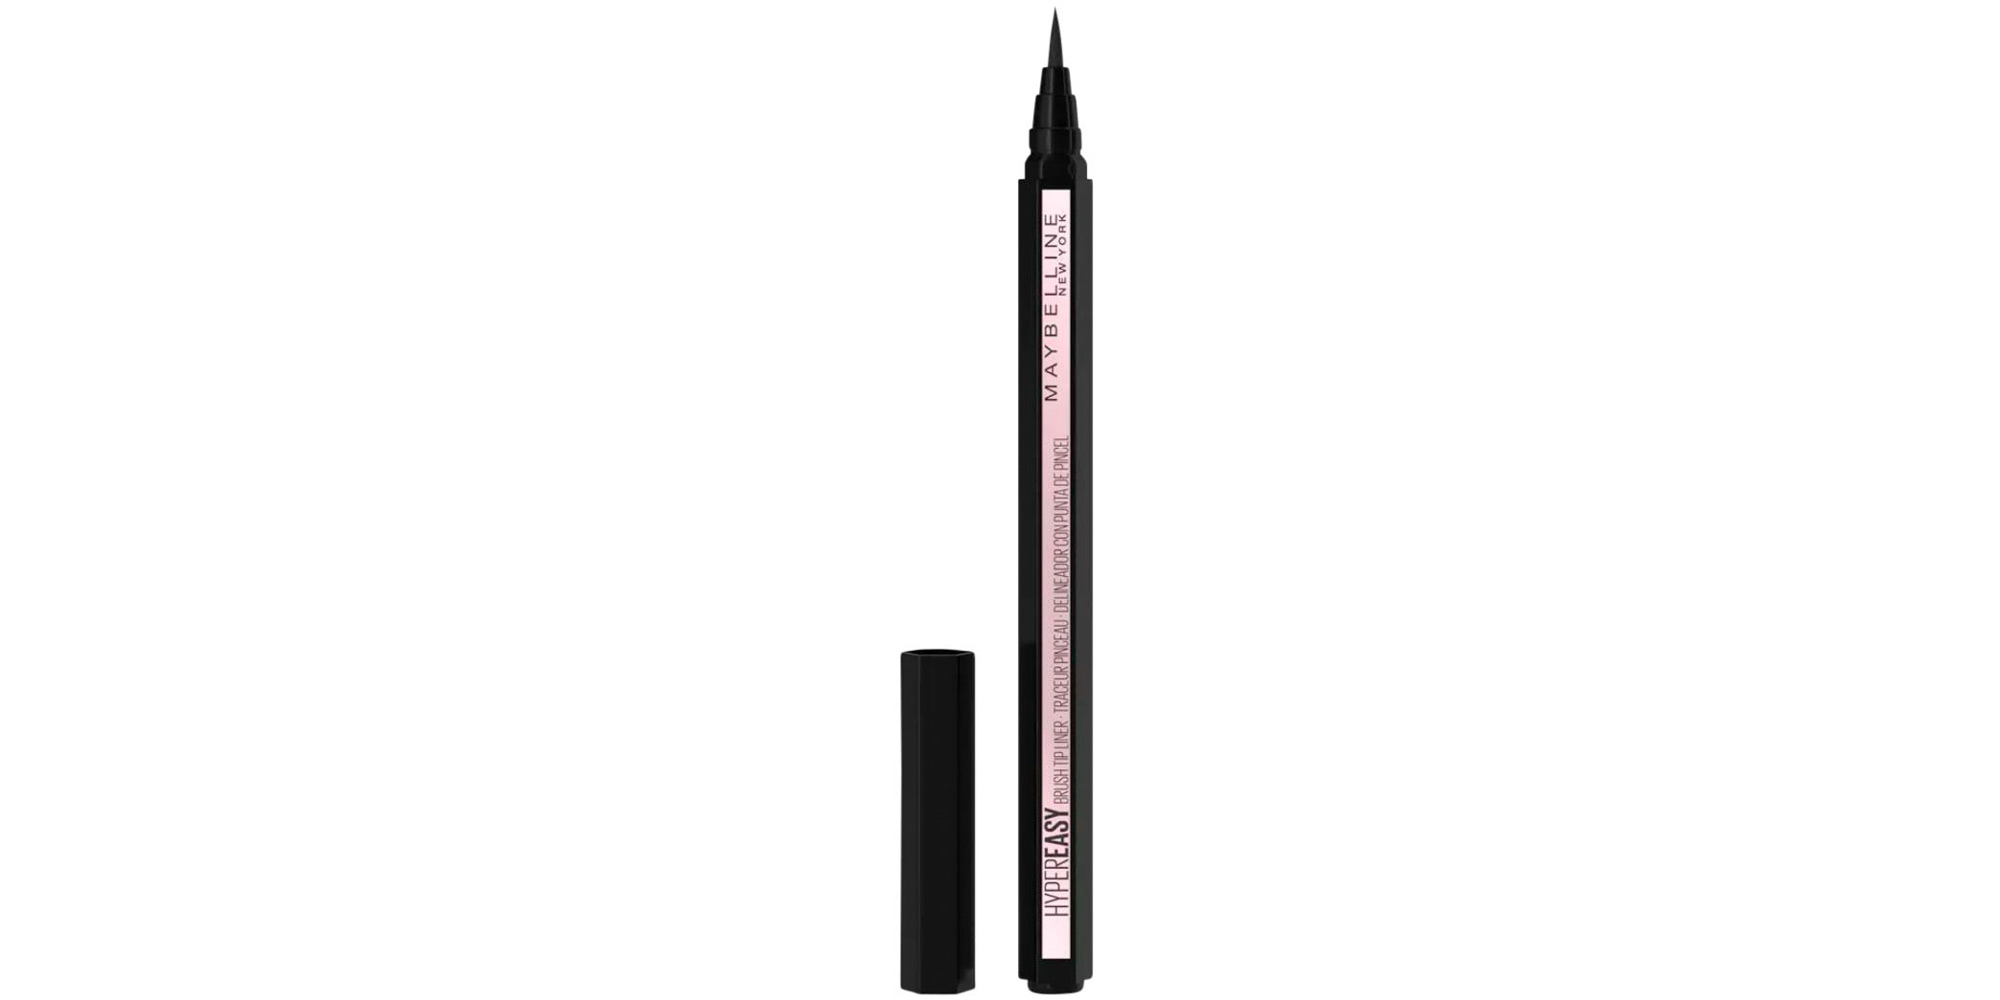 Maybelline New York Hyper Easy Brush Tip Liquid Liner